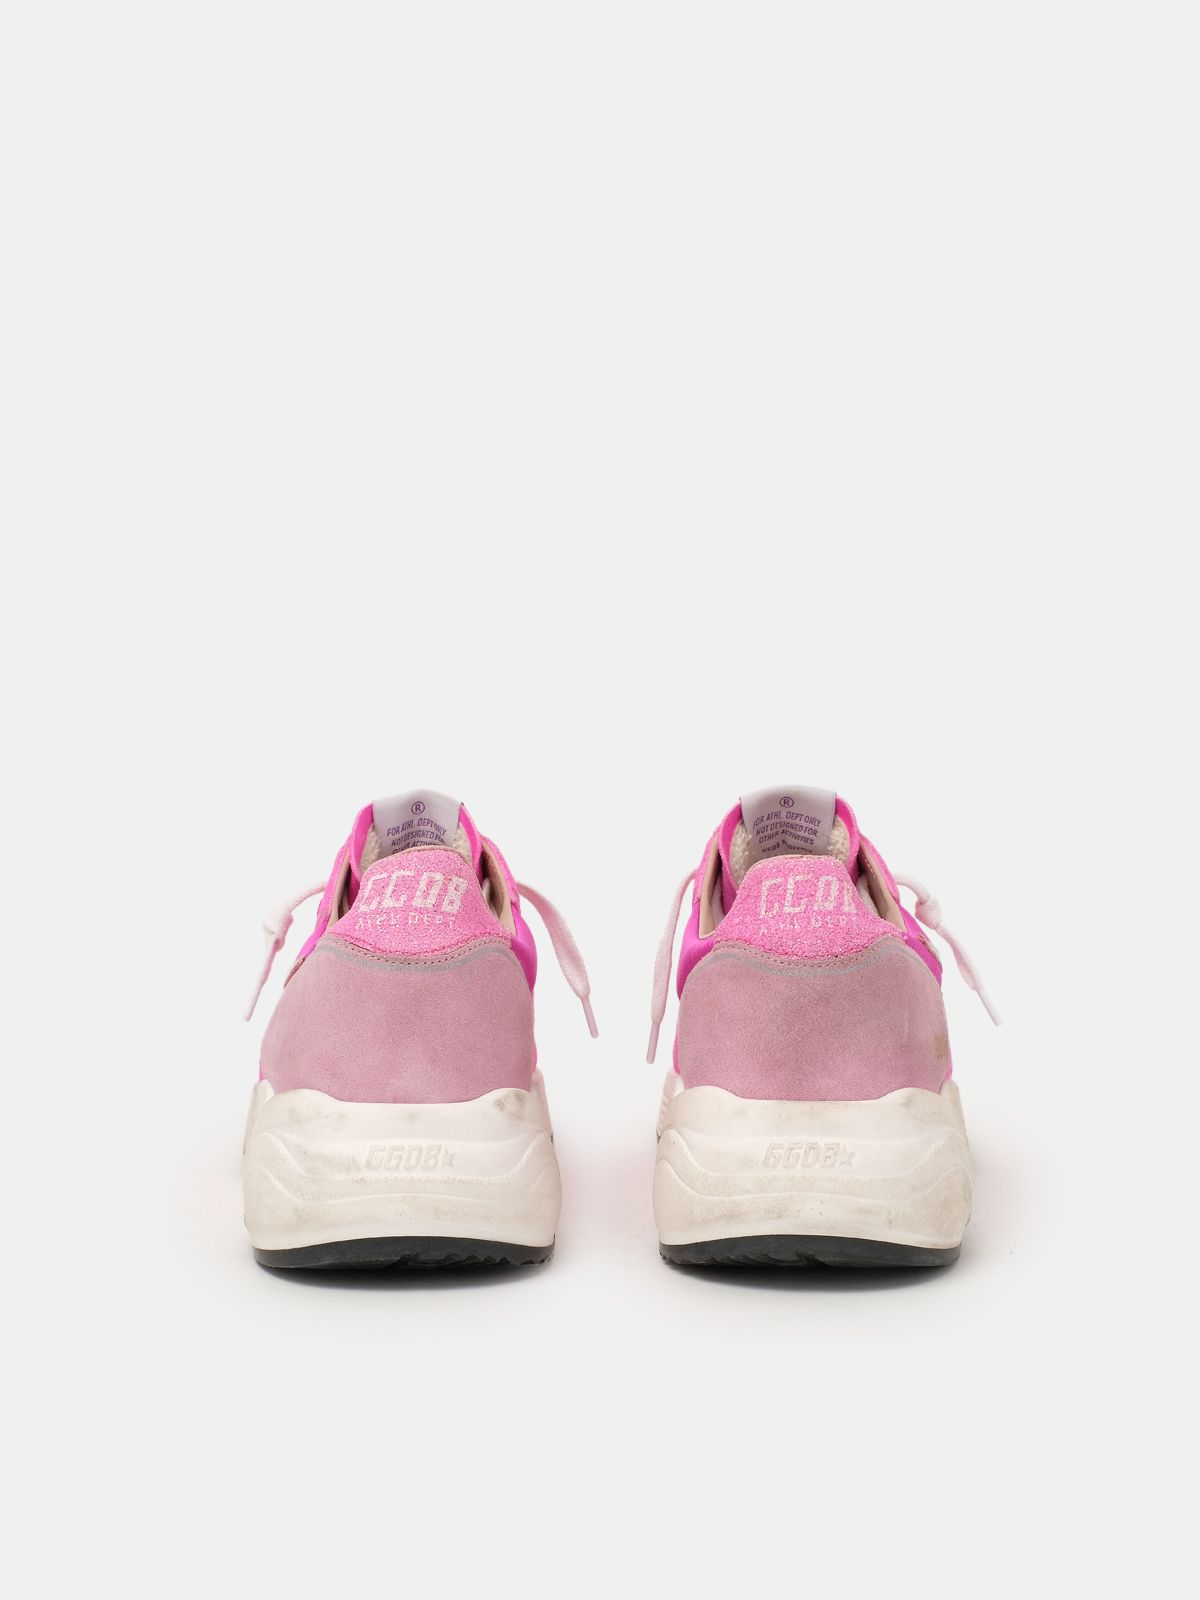 Golden Goose - Fuchsia and pink Running Sole sneakers in